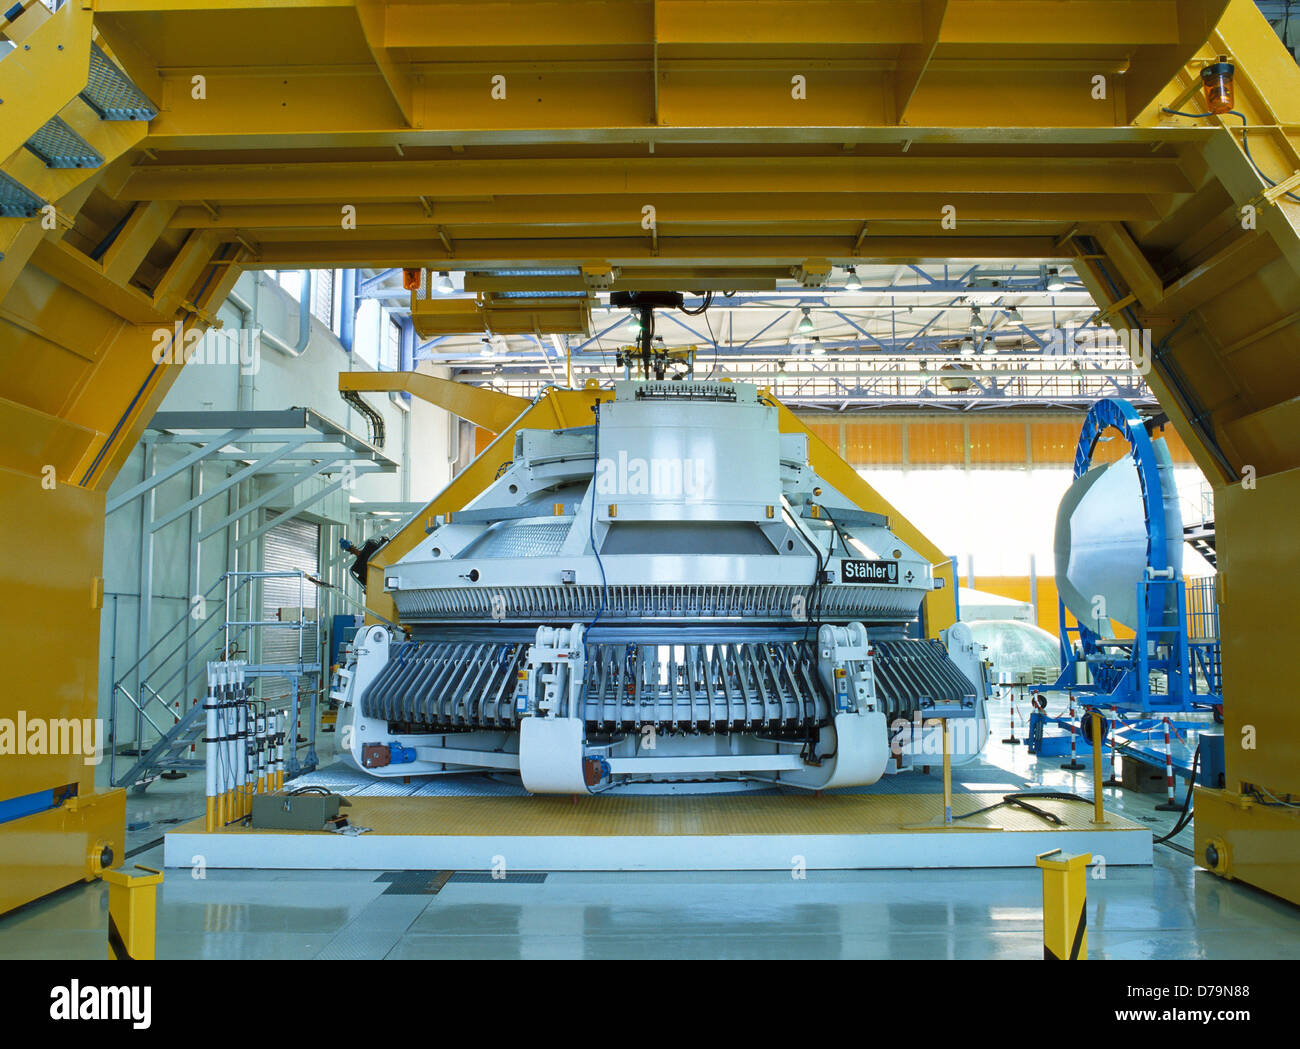 Production hall facility welding aluminum alloy - Stock Image